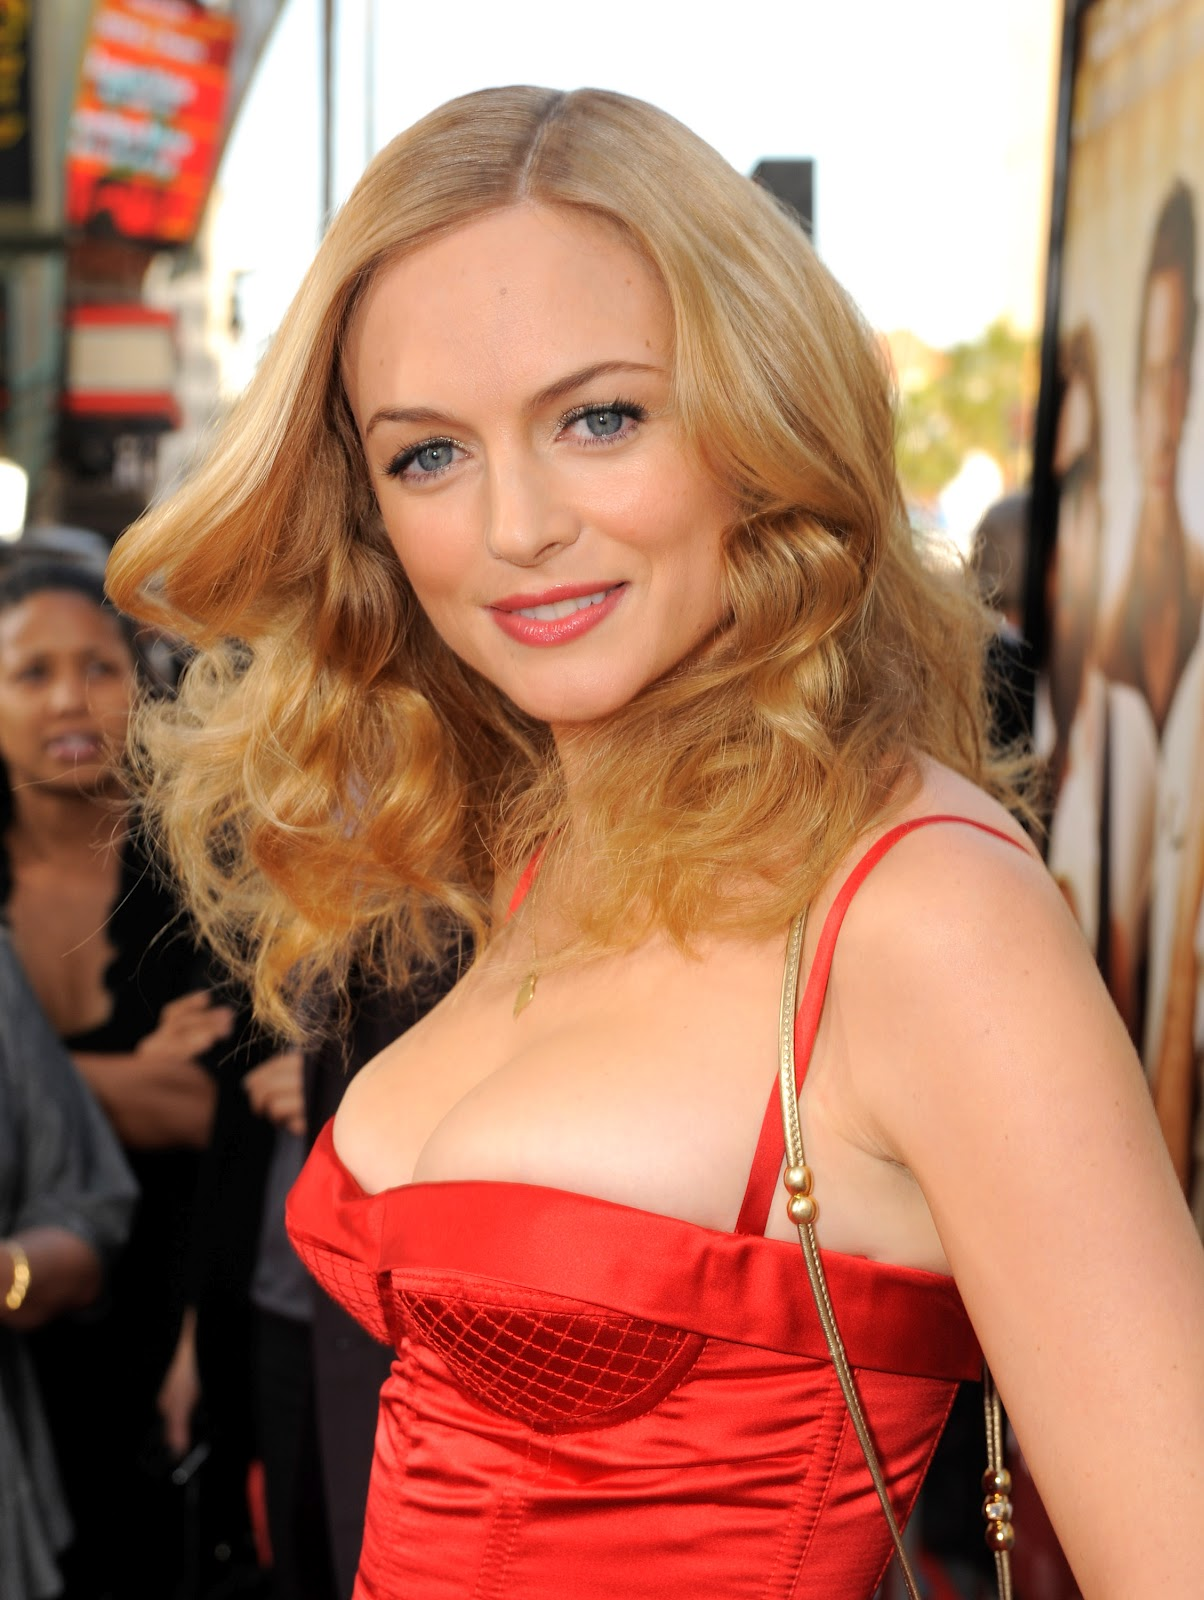 Hot Pic Heather Graham Volume 1 Cleavage-4182